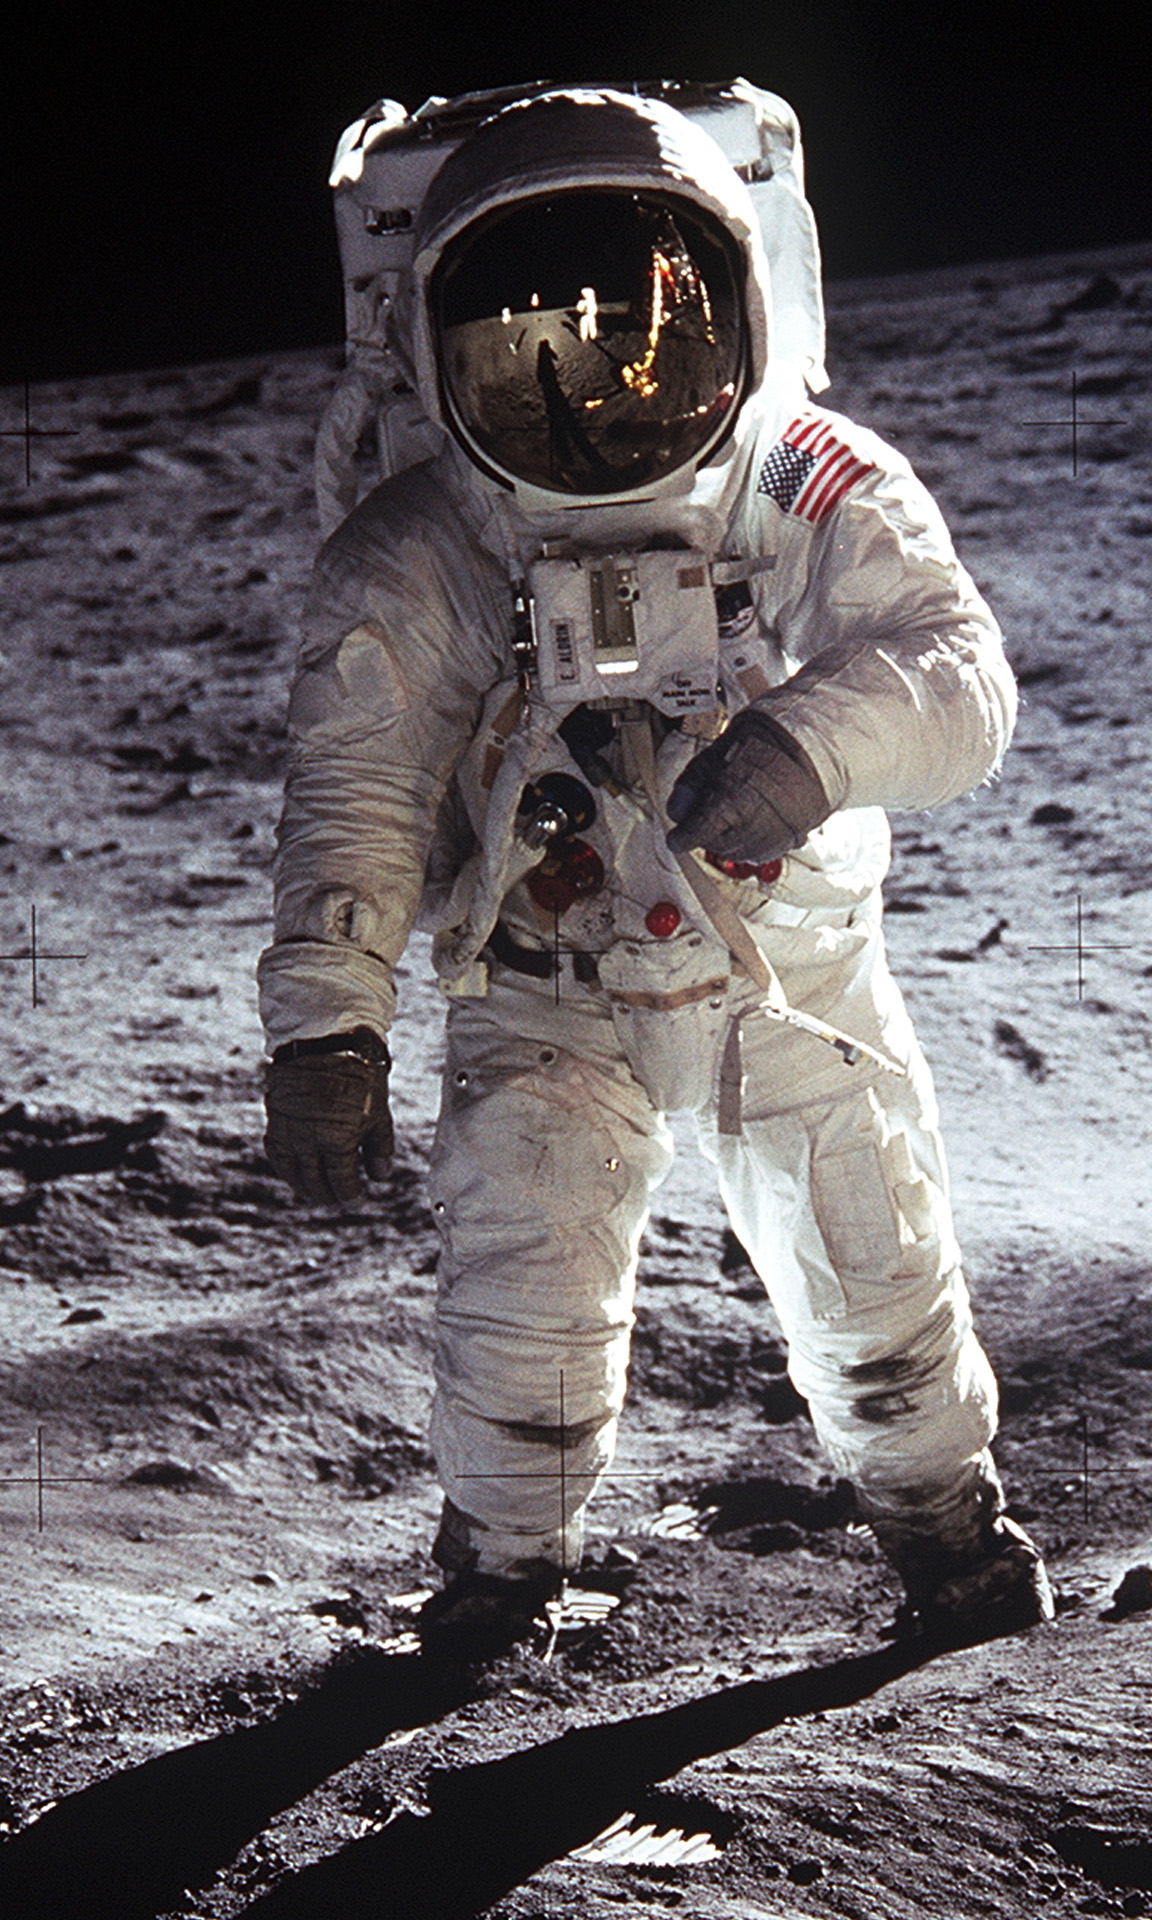 Image of Buzz Aldrin from Wikidata